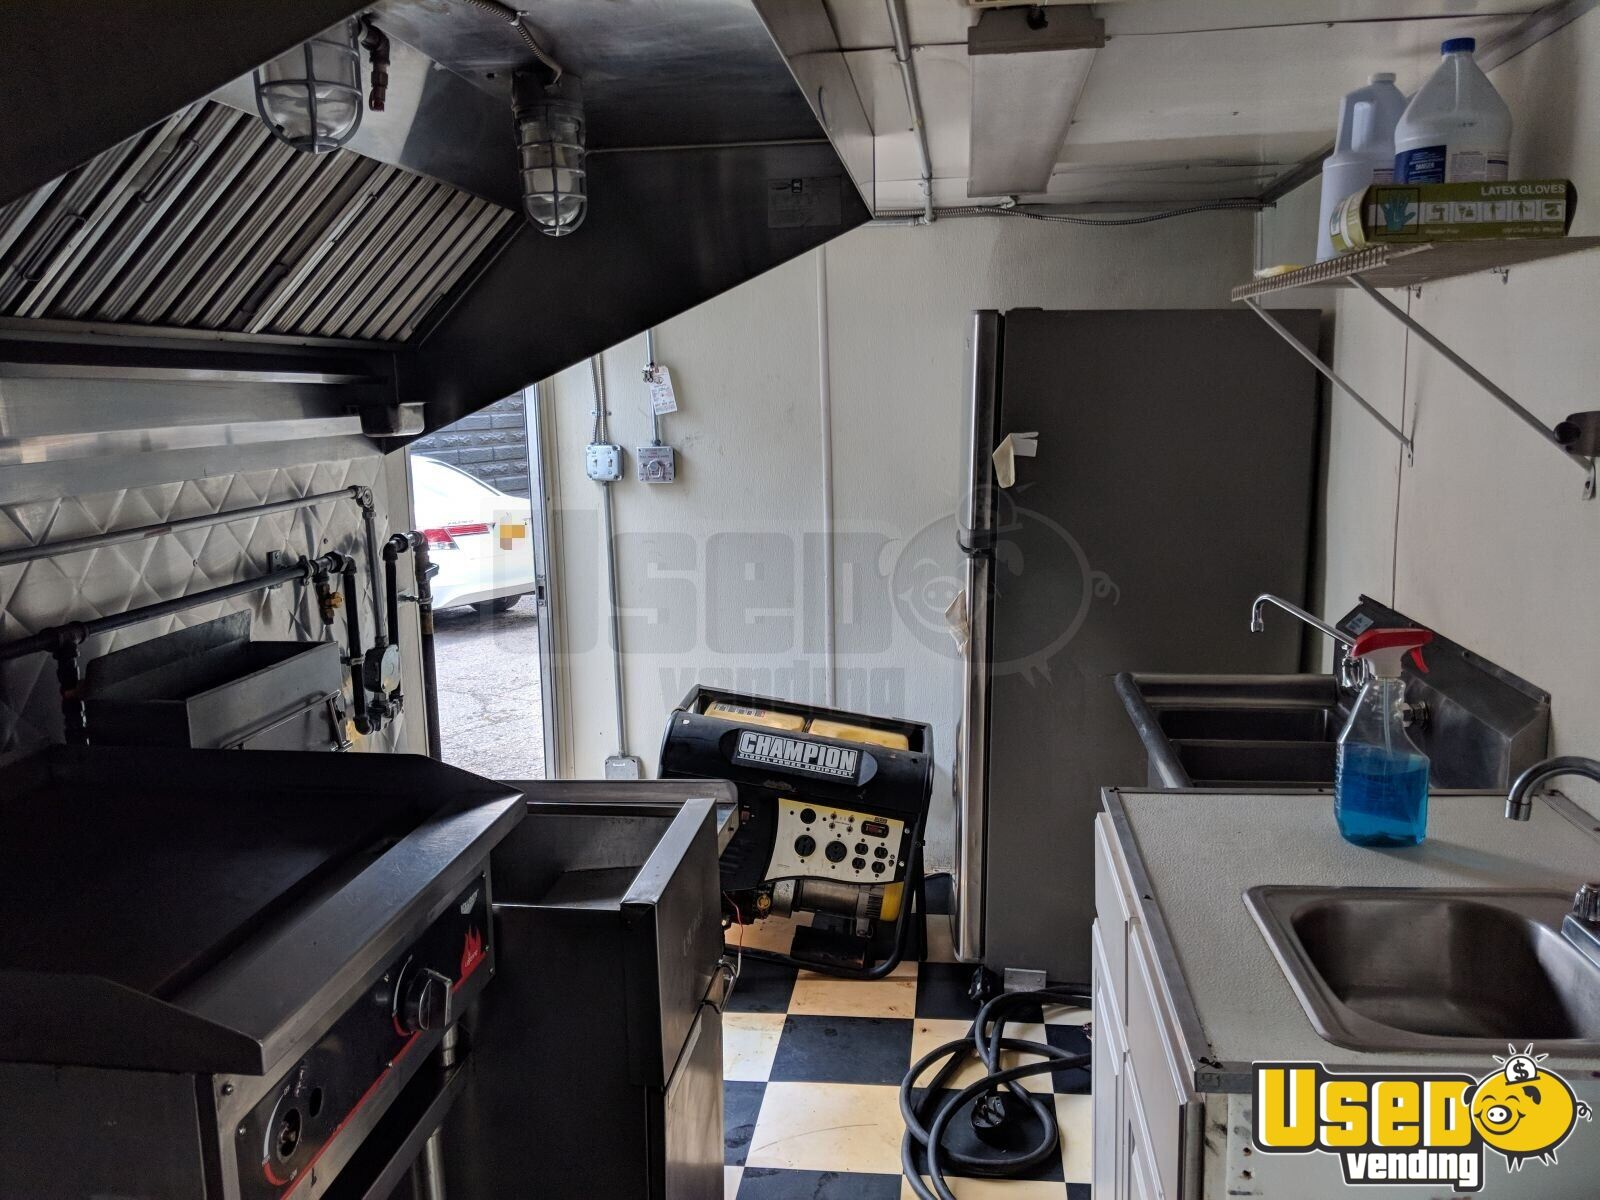 2003 Food Concession Trailer Kitchen Food Trailer Removable Trailer Hitch New York for Sale - 4